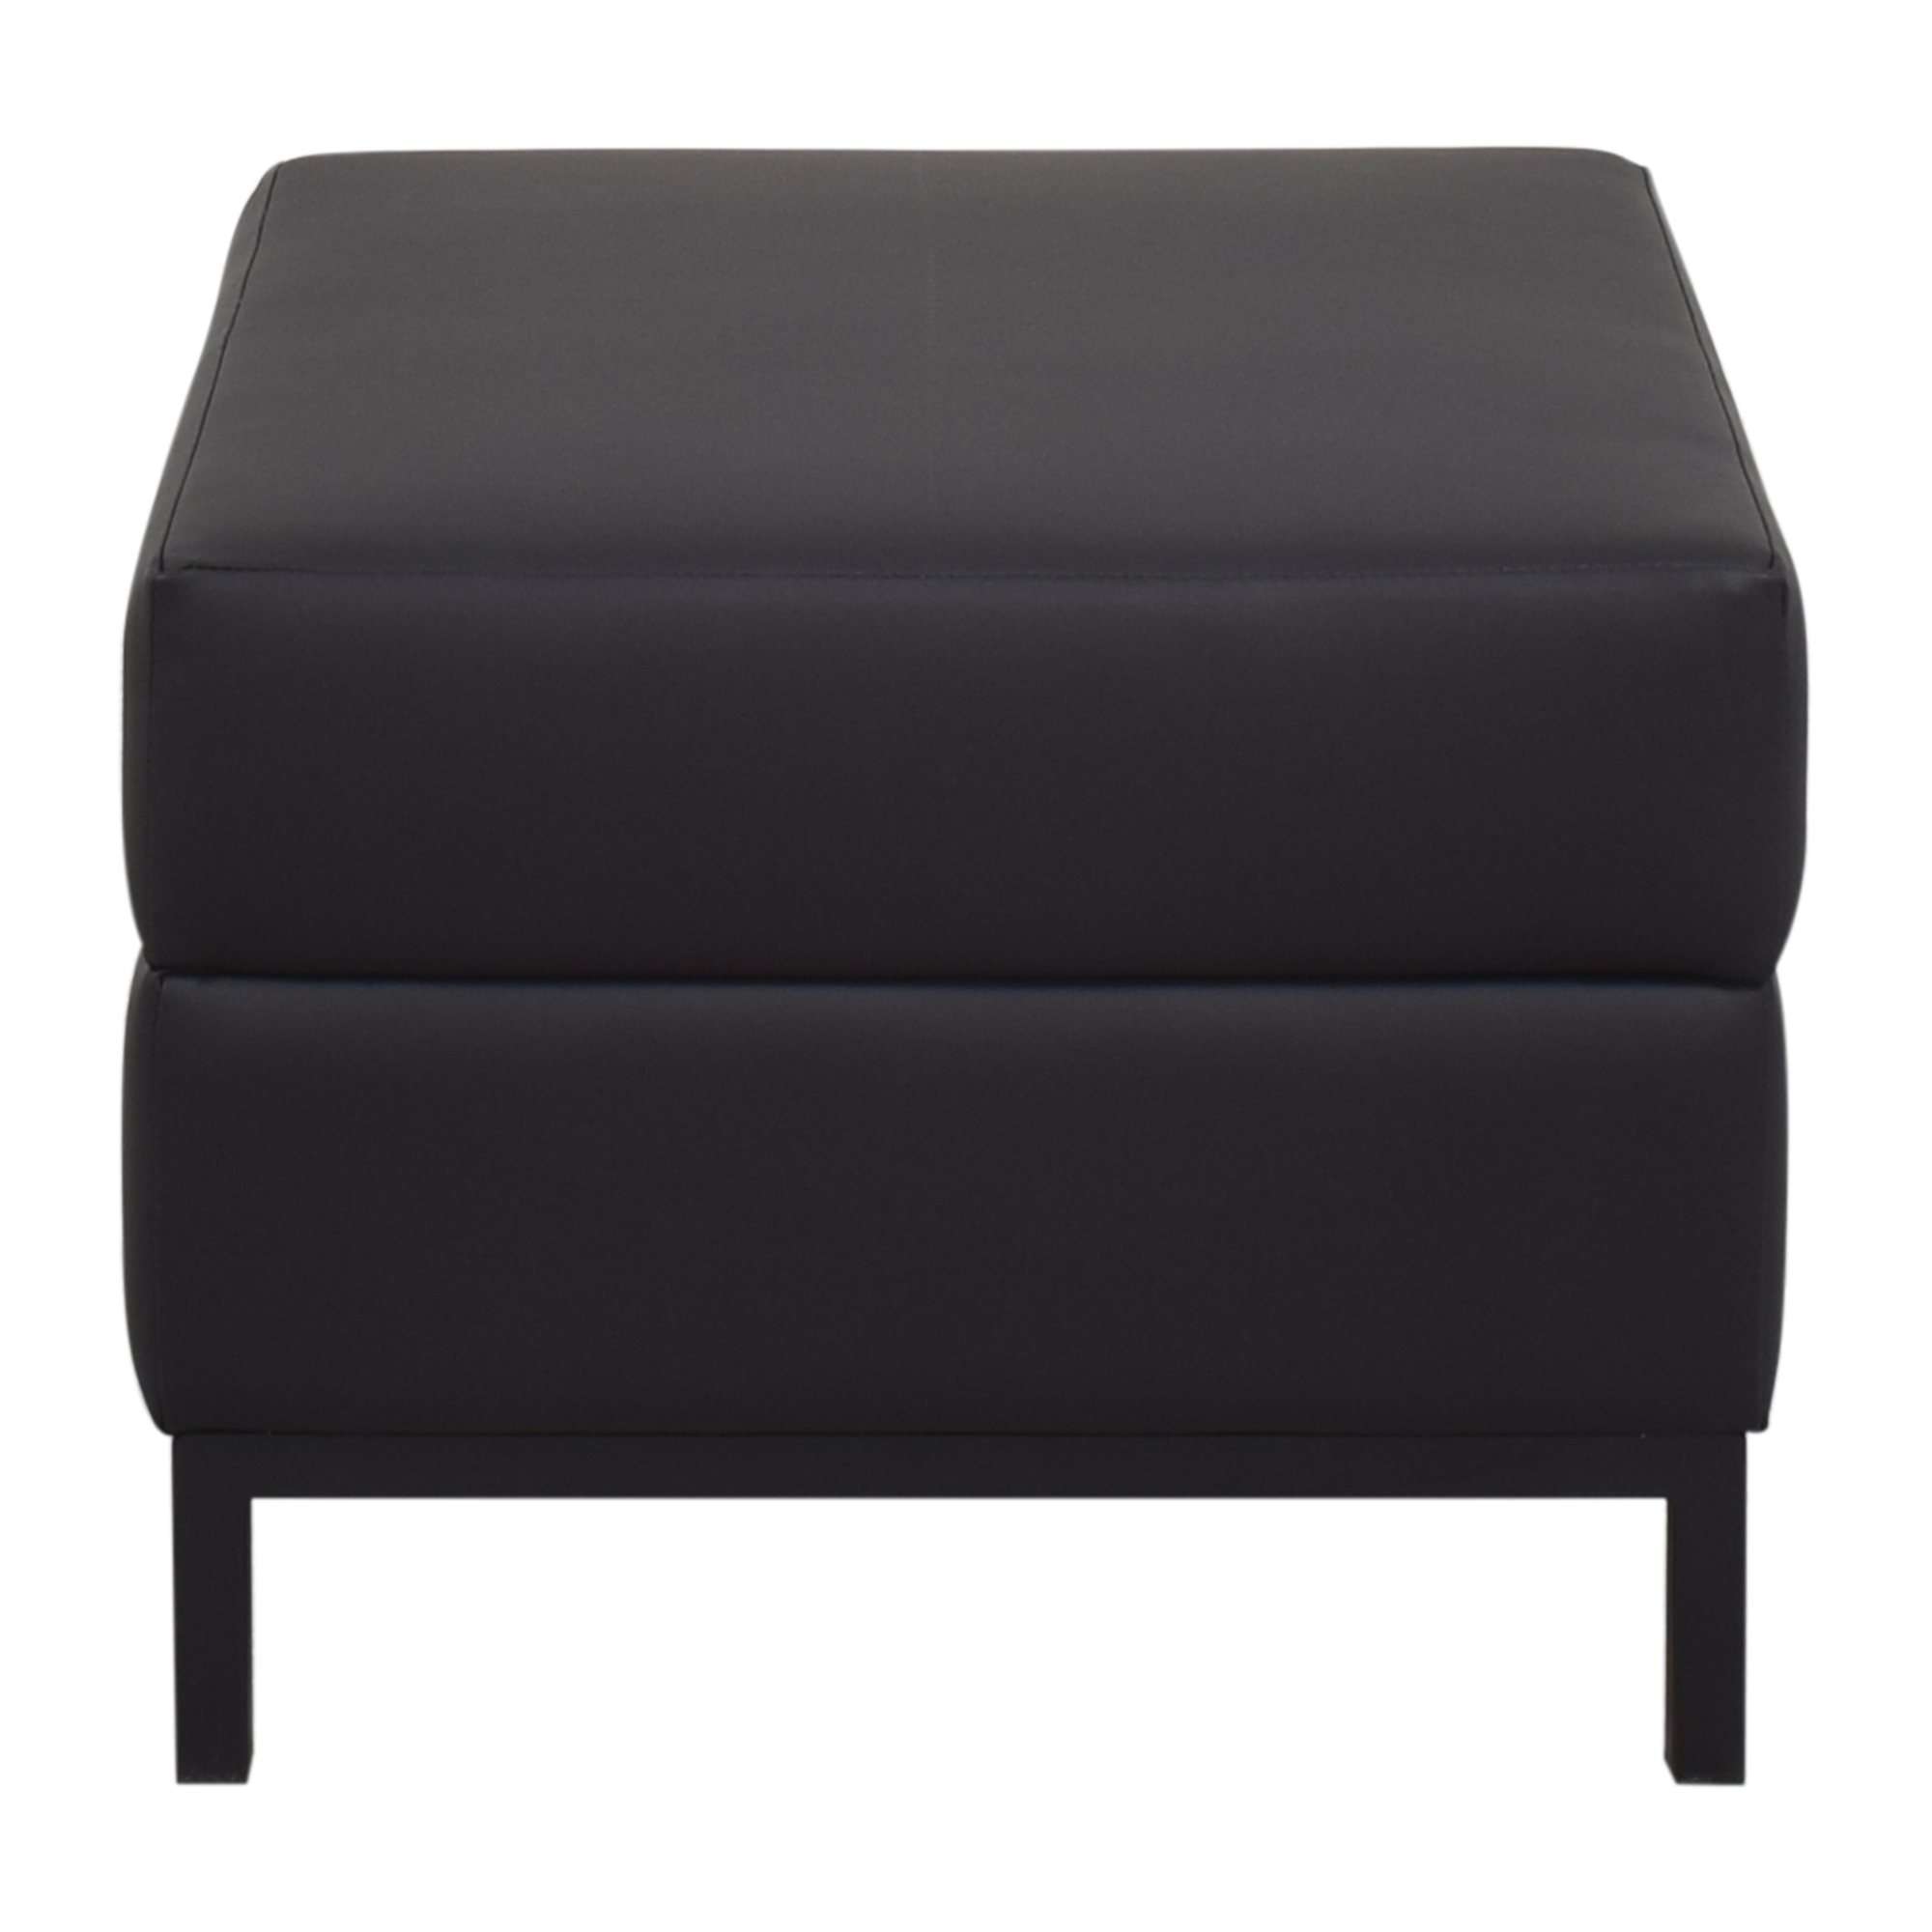 Global Furniture Group Global Furniture Group Citi Square Ottoman second hand